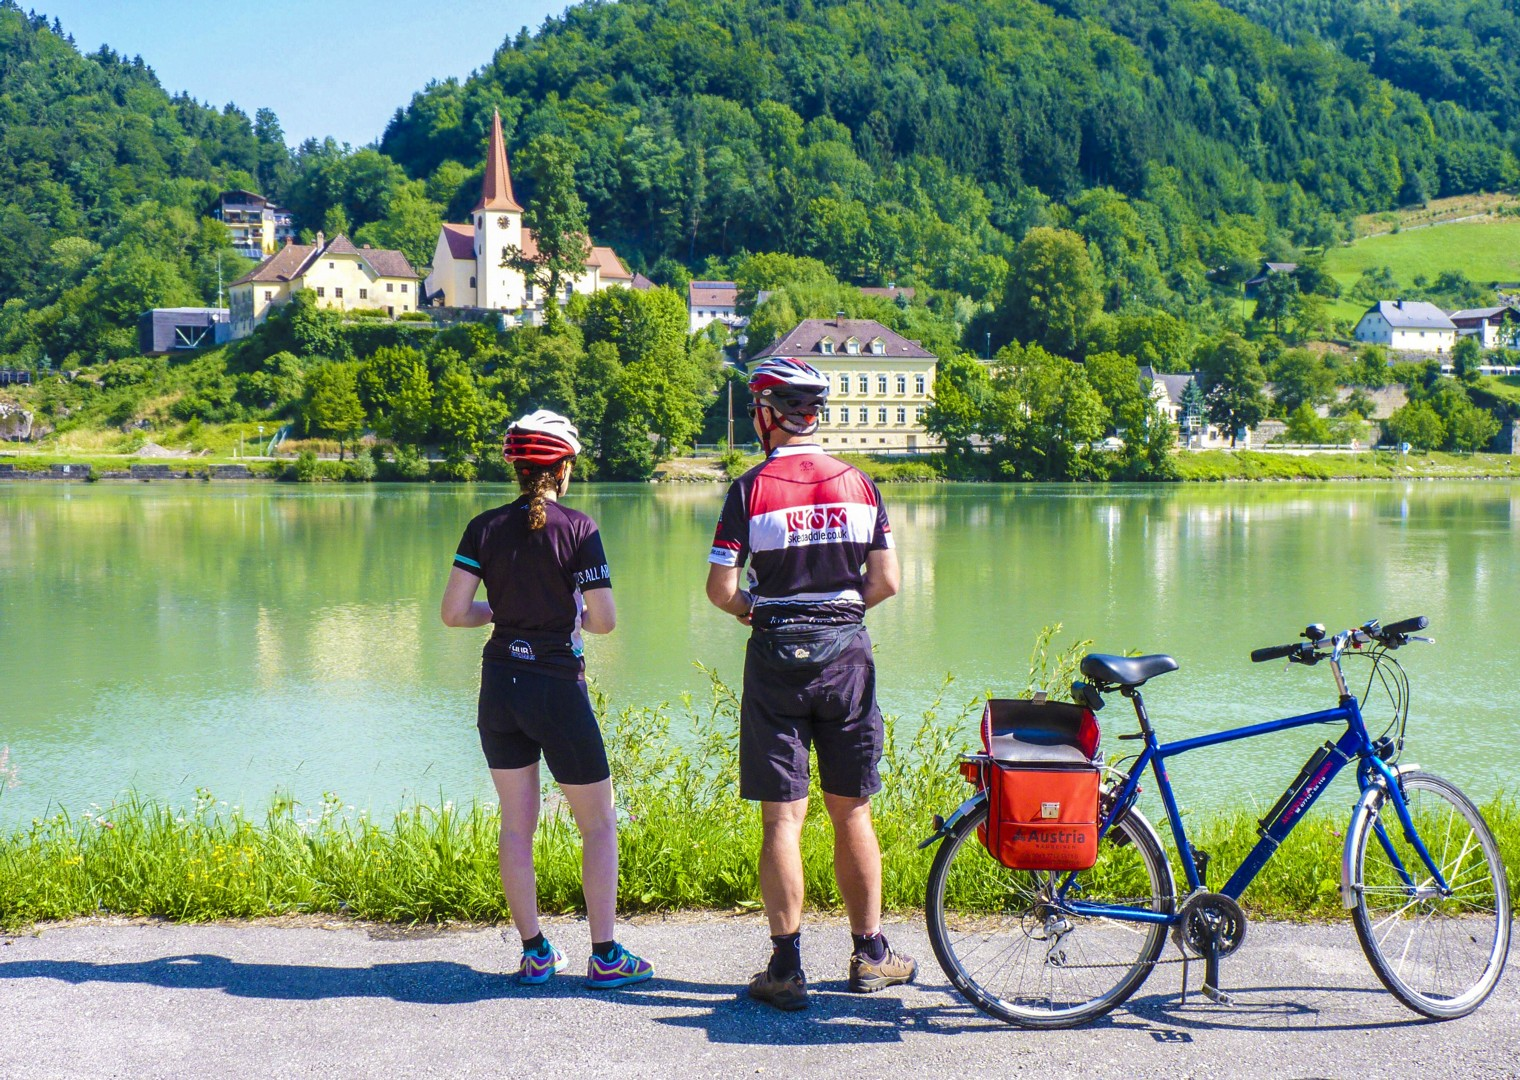 germany-austria-danube-cycle-path-self-guided-skedaddle-cycling-holiday.jpg - Germany and Austria - The Danube Cyclepath (10 Days) - Self-Guided Leisure Cycling Holiday - Leisure Cycling